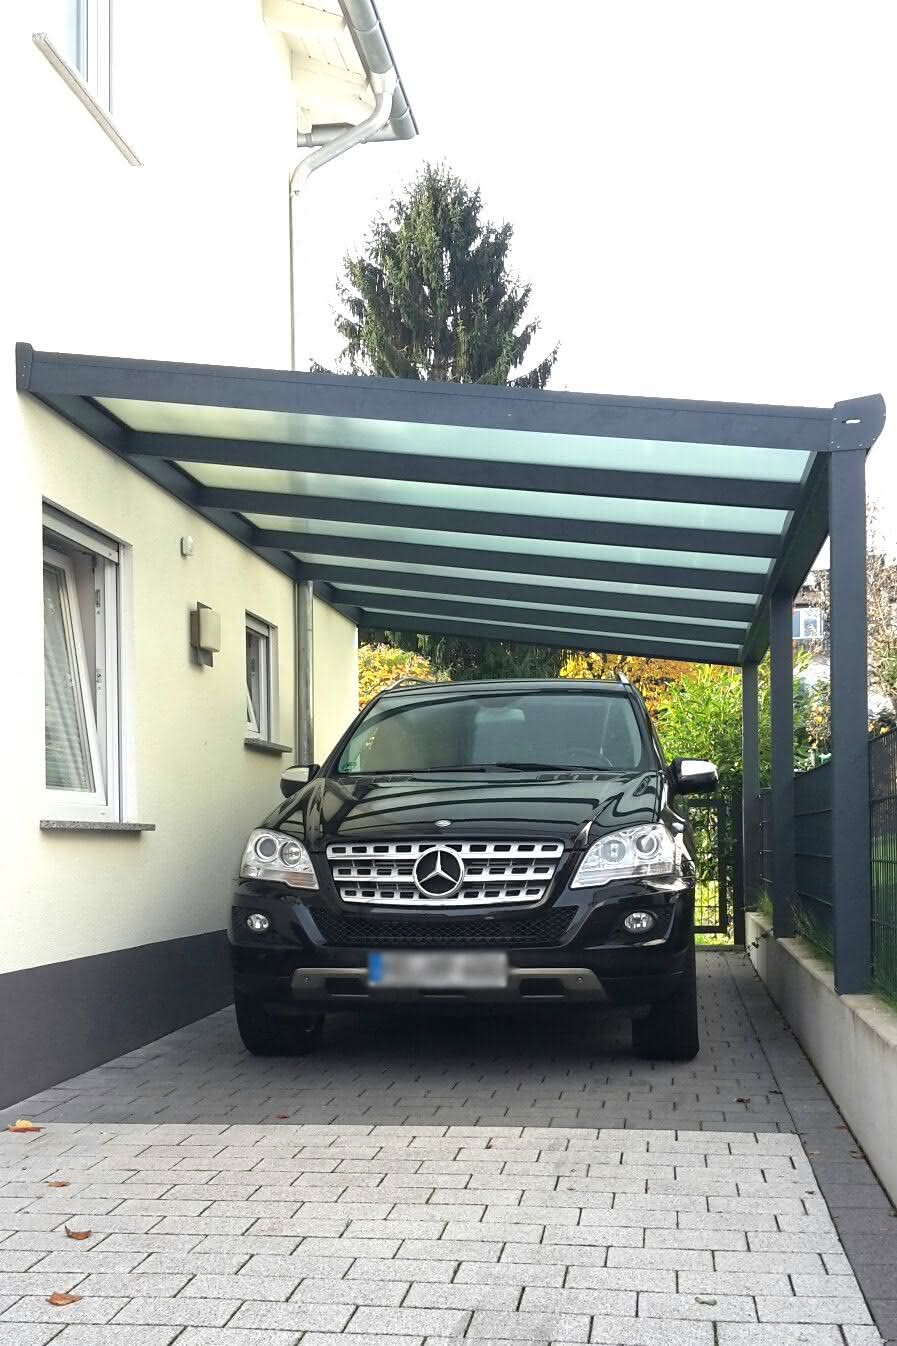 Carports Bilder carport alu trendy fresh wooden carport plans bois dans les travaux